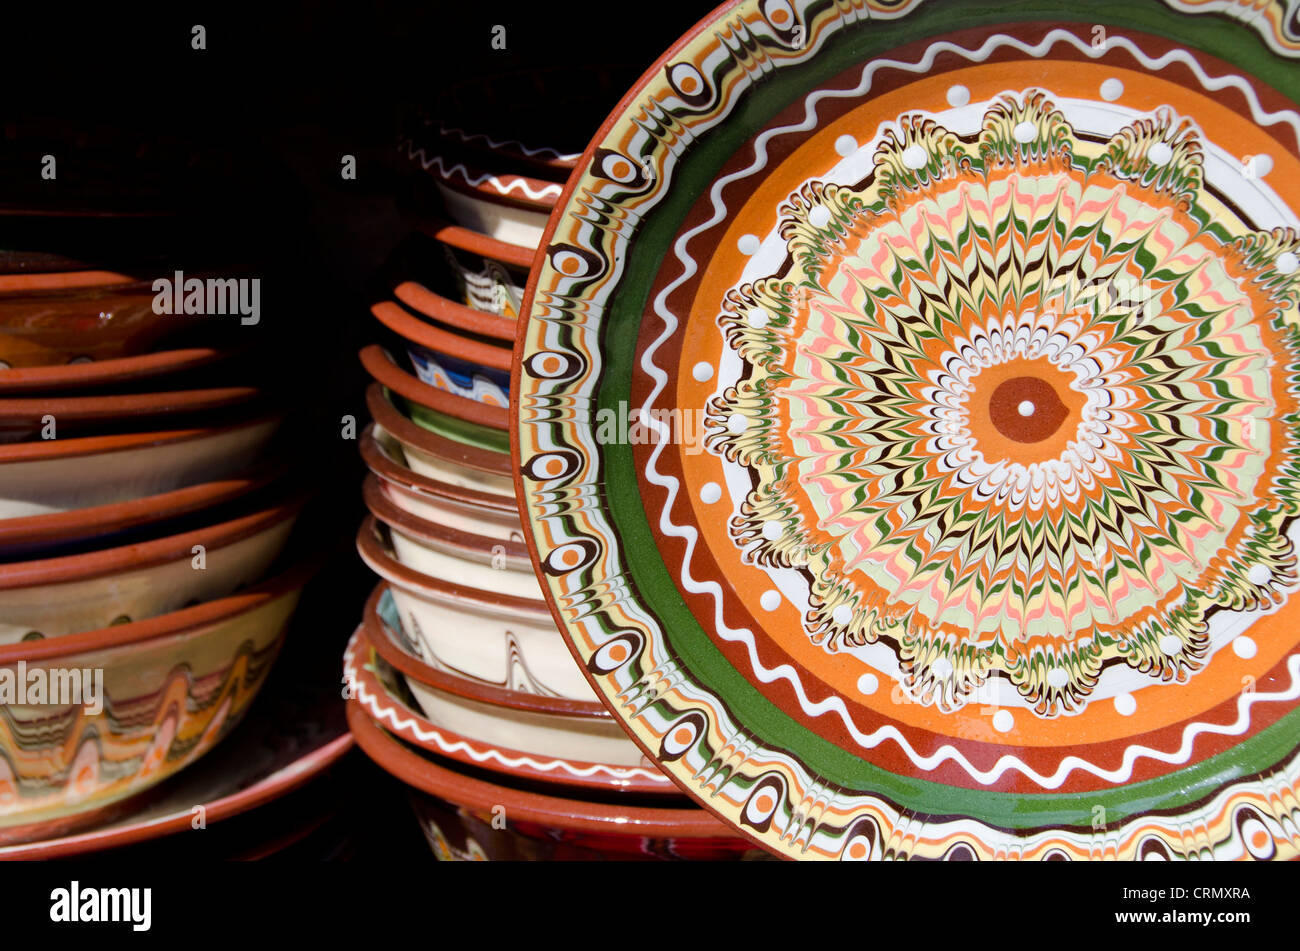 Bulgaria, Nessebur (aka Nessebar or Nesebar). Traditional Bulgarian handicraft pottery with typical colorful pattern. - Stock Image